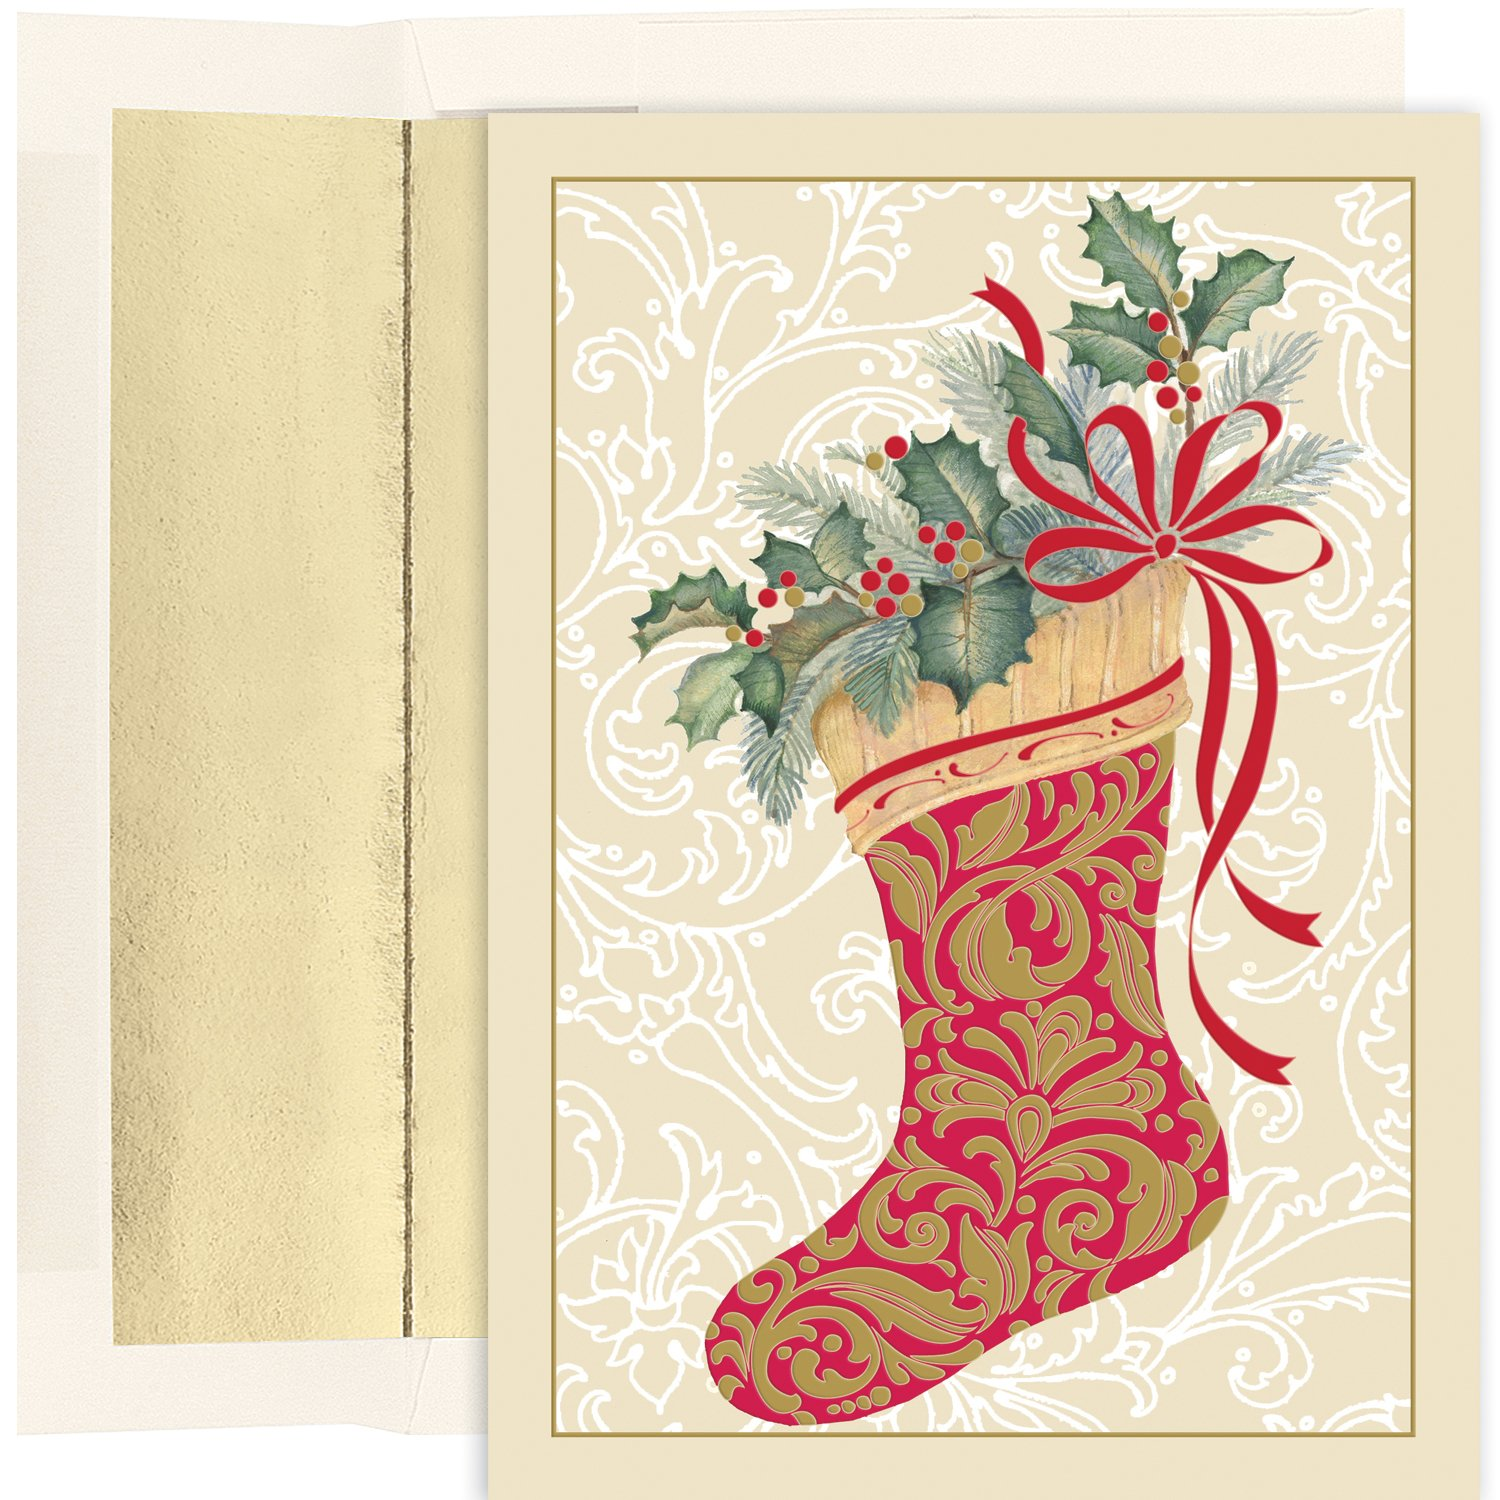 Masterpiece Studios Holiday Collection 16 Cards // 16 Foil Lined ...